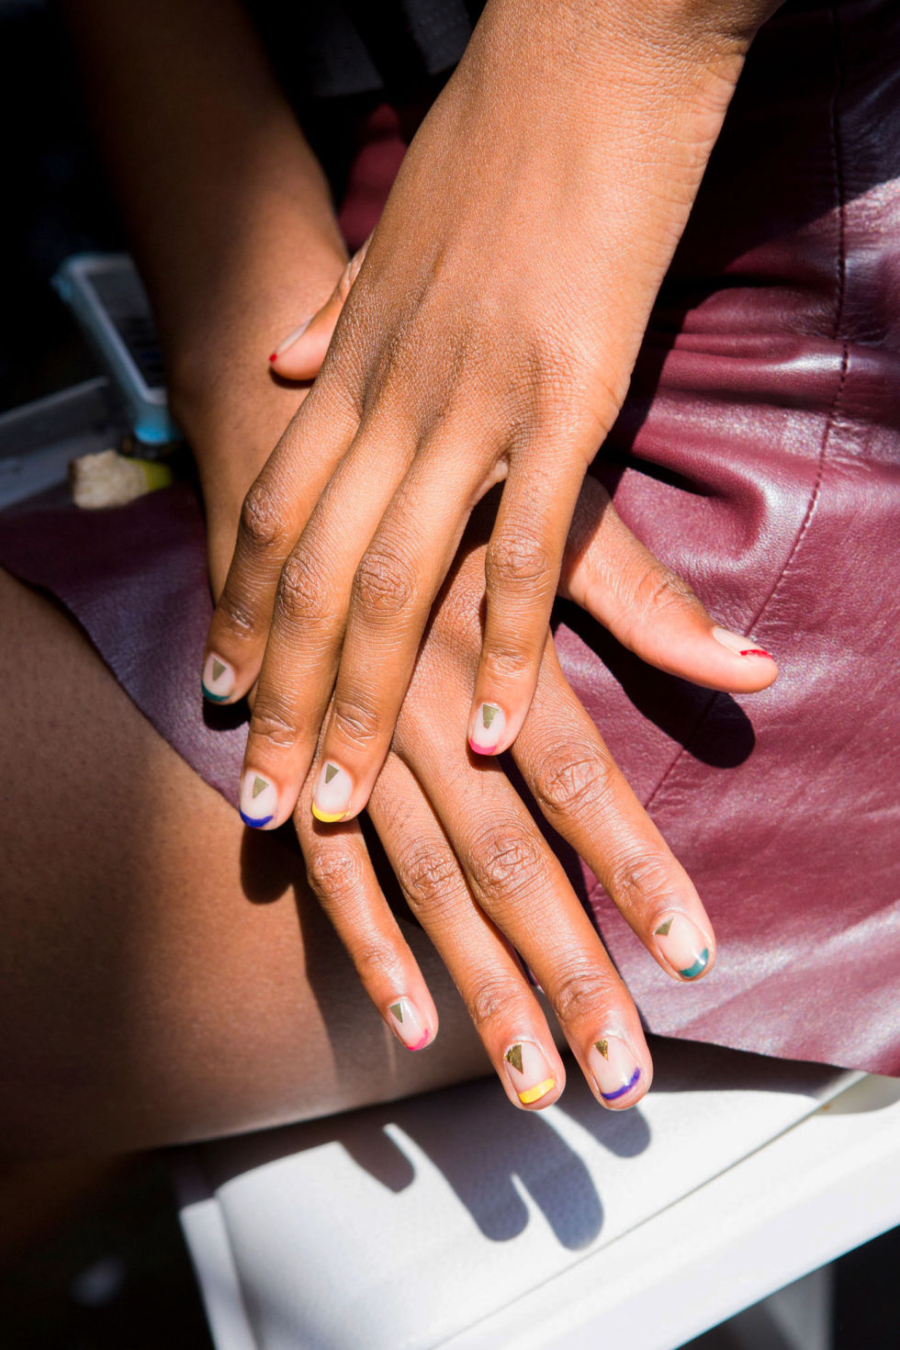 Multi-Colored Mani Nails - 5 Fashion Forward Nail Trends For Spring You Need To See // Notjessfashion.com